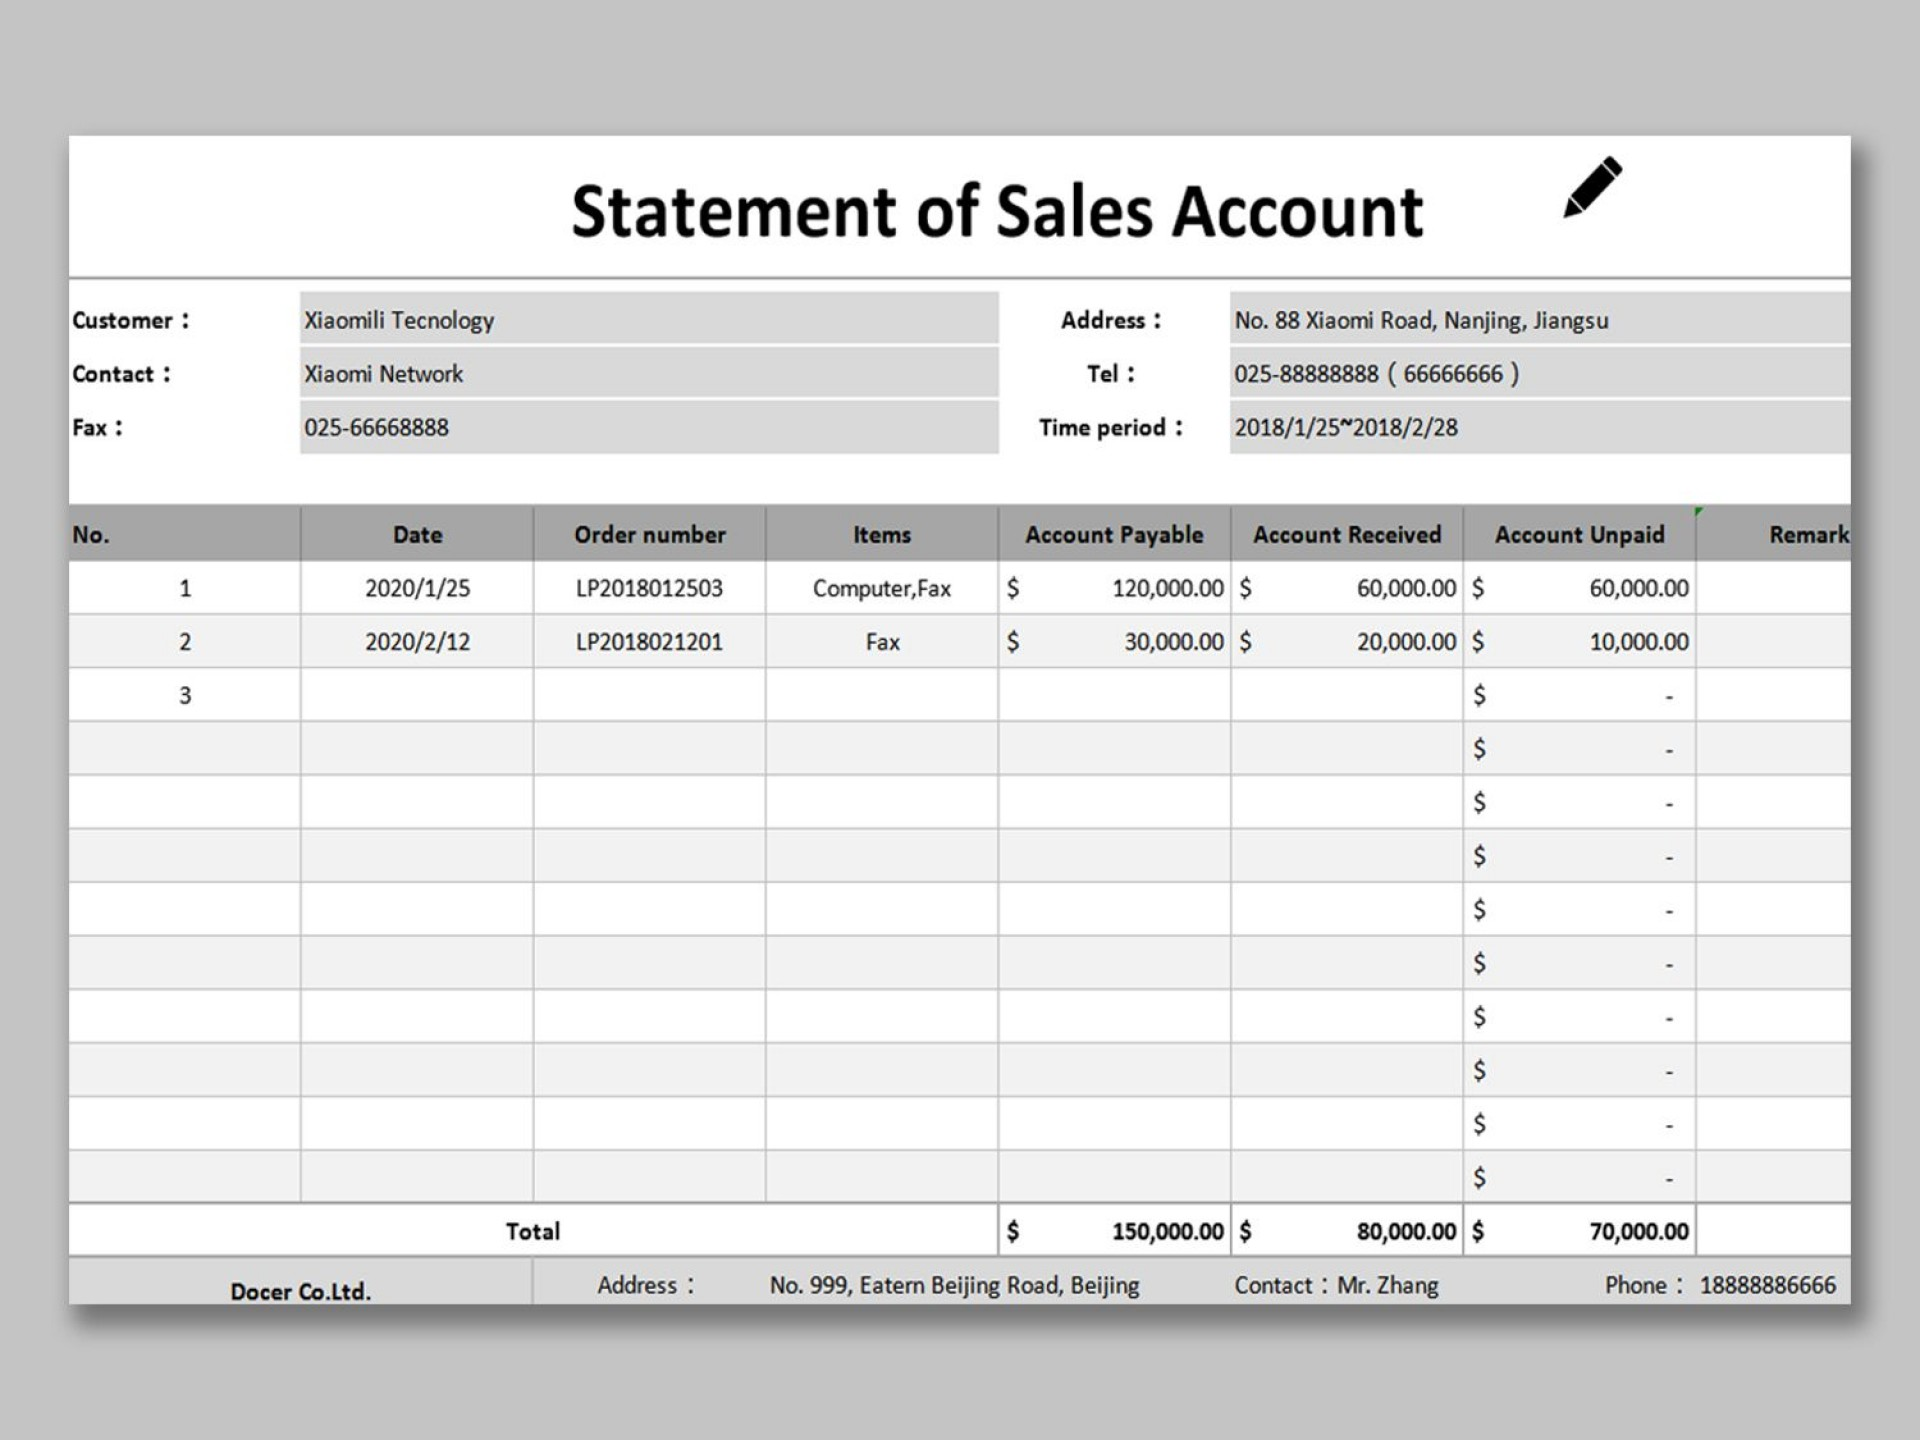 002 Phenomenal Statement Of Account Template Image  Singapore Excel Free Doc1920